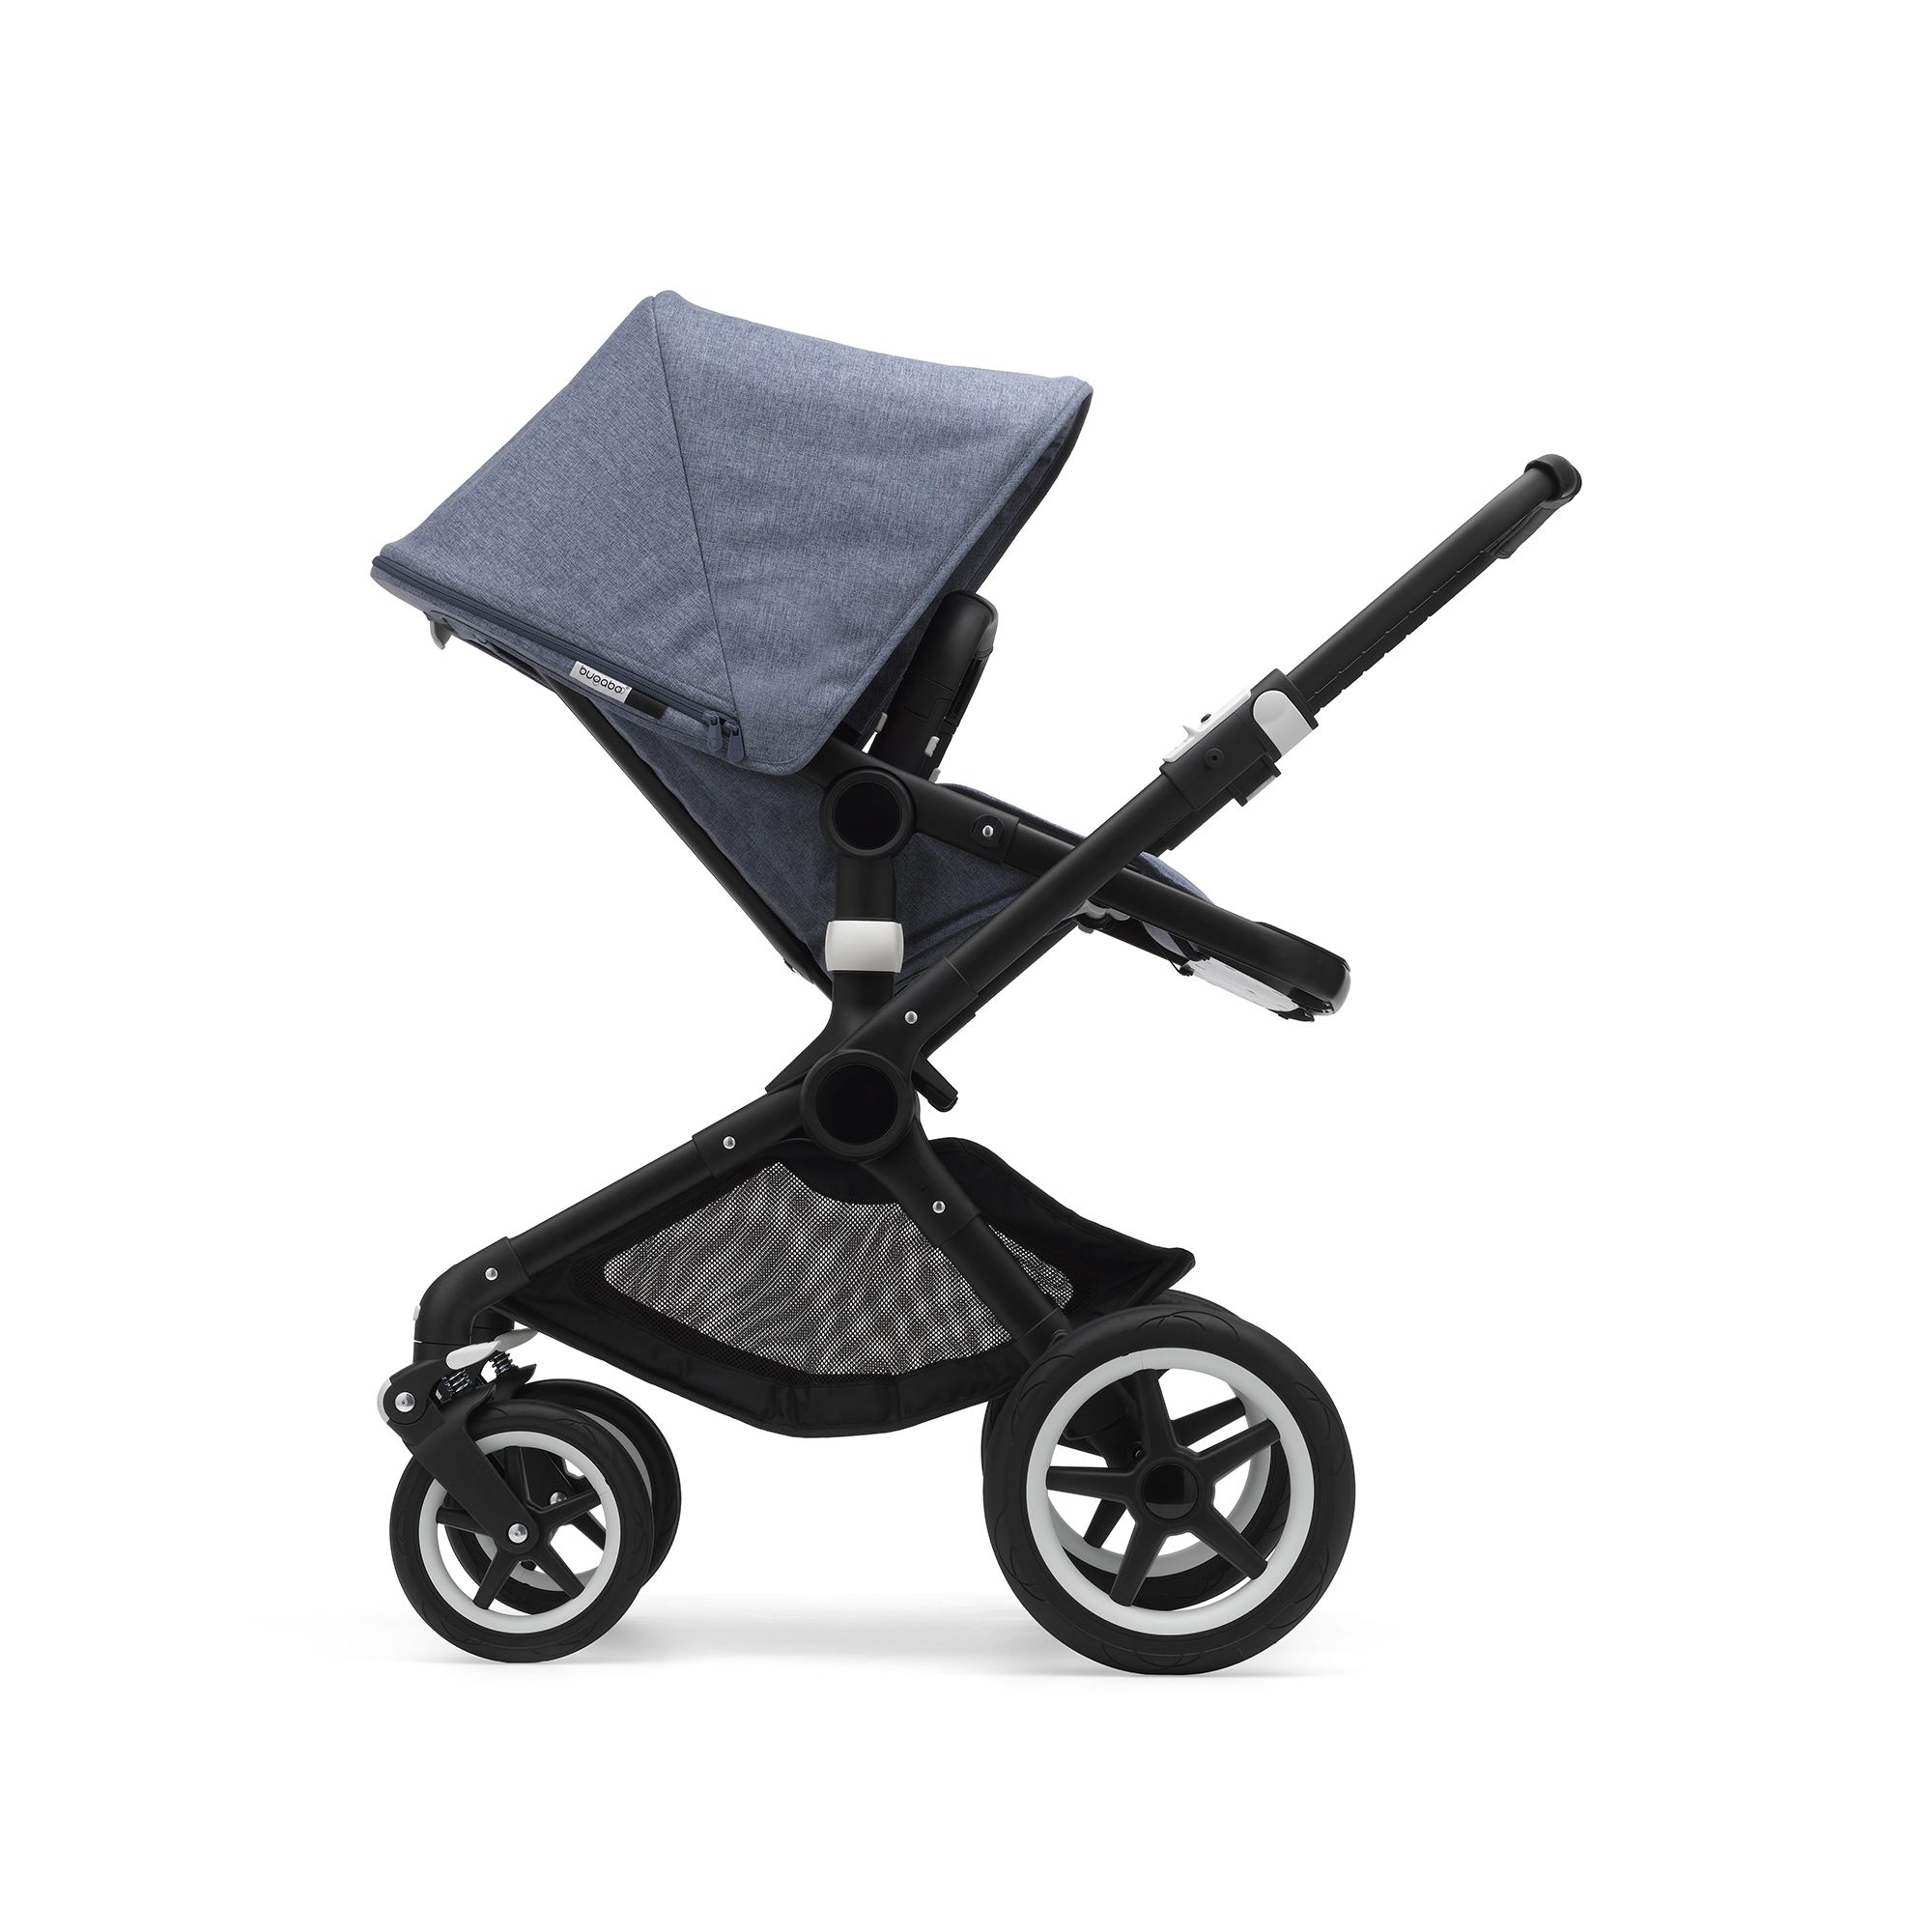 Choose the Right Bugaboo Stroller for Your Lifestyle